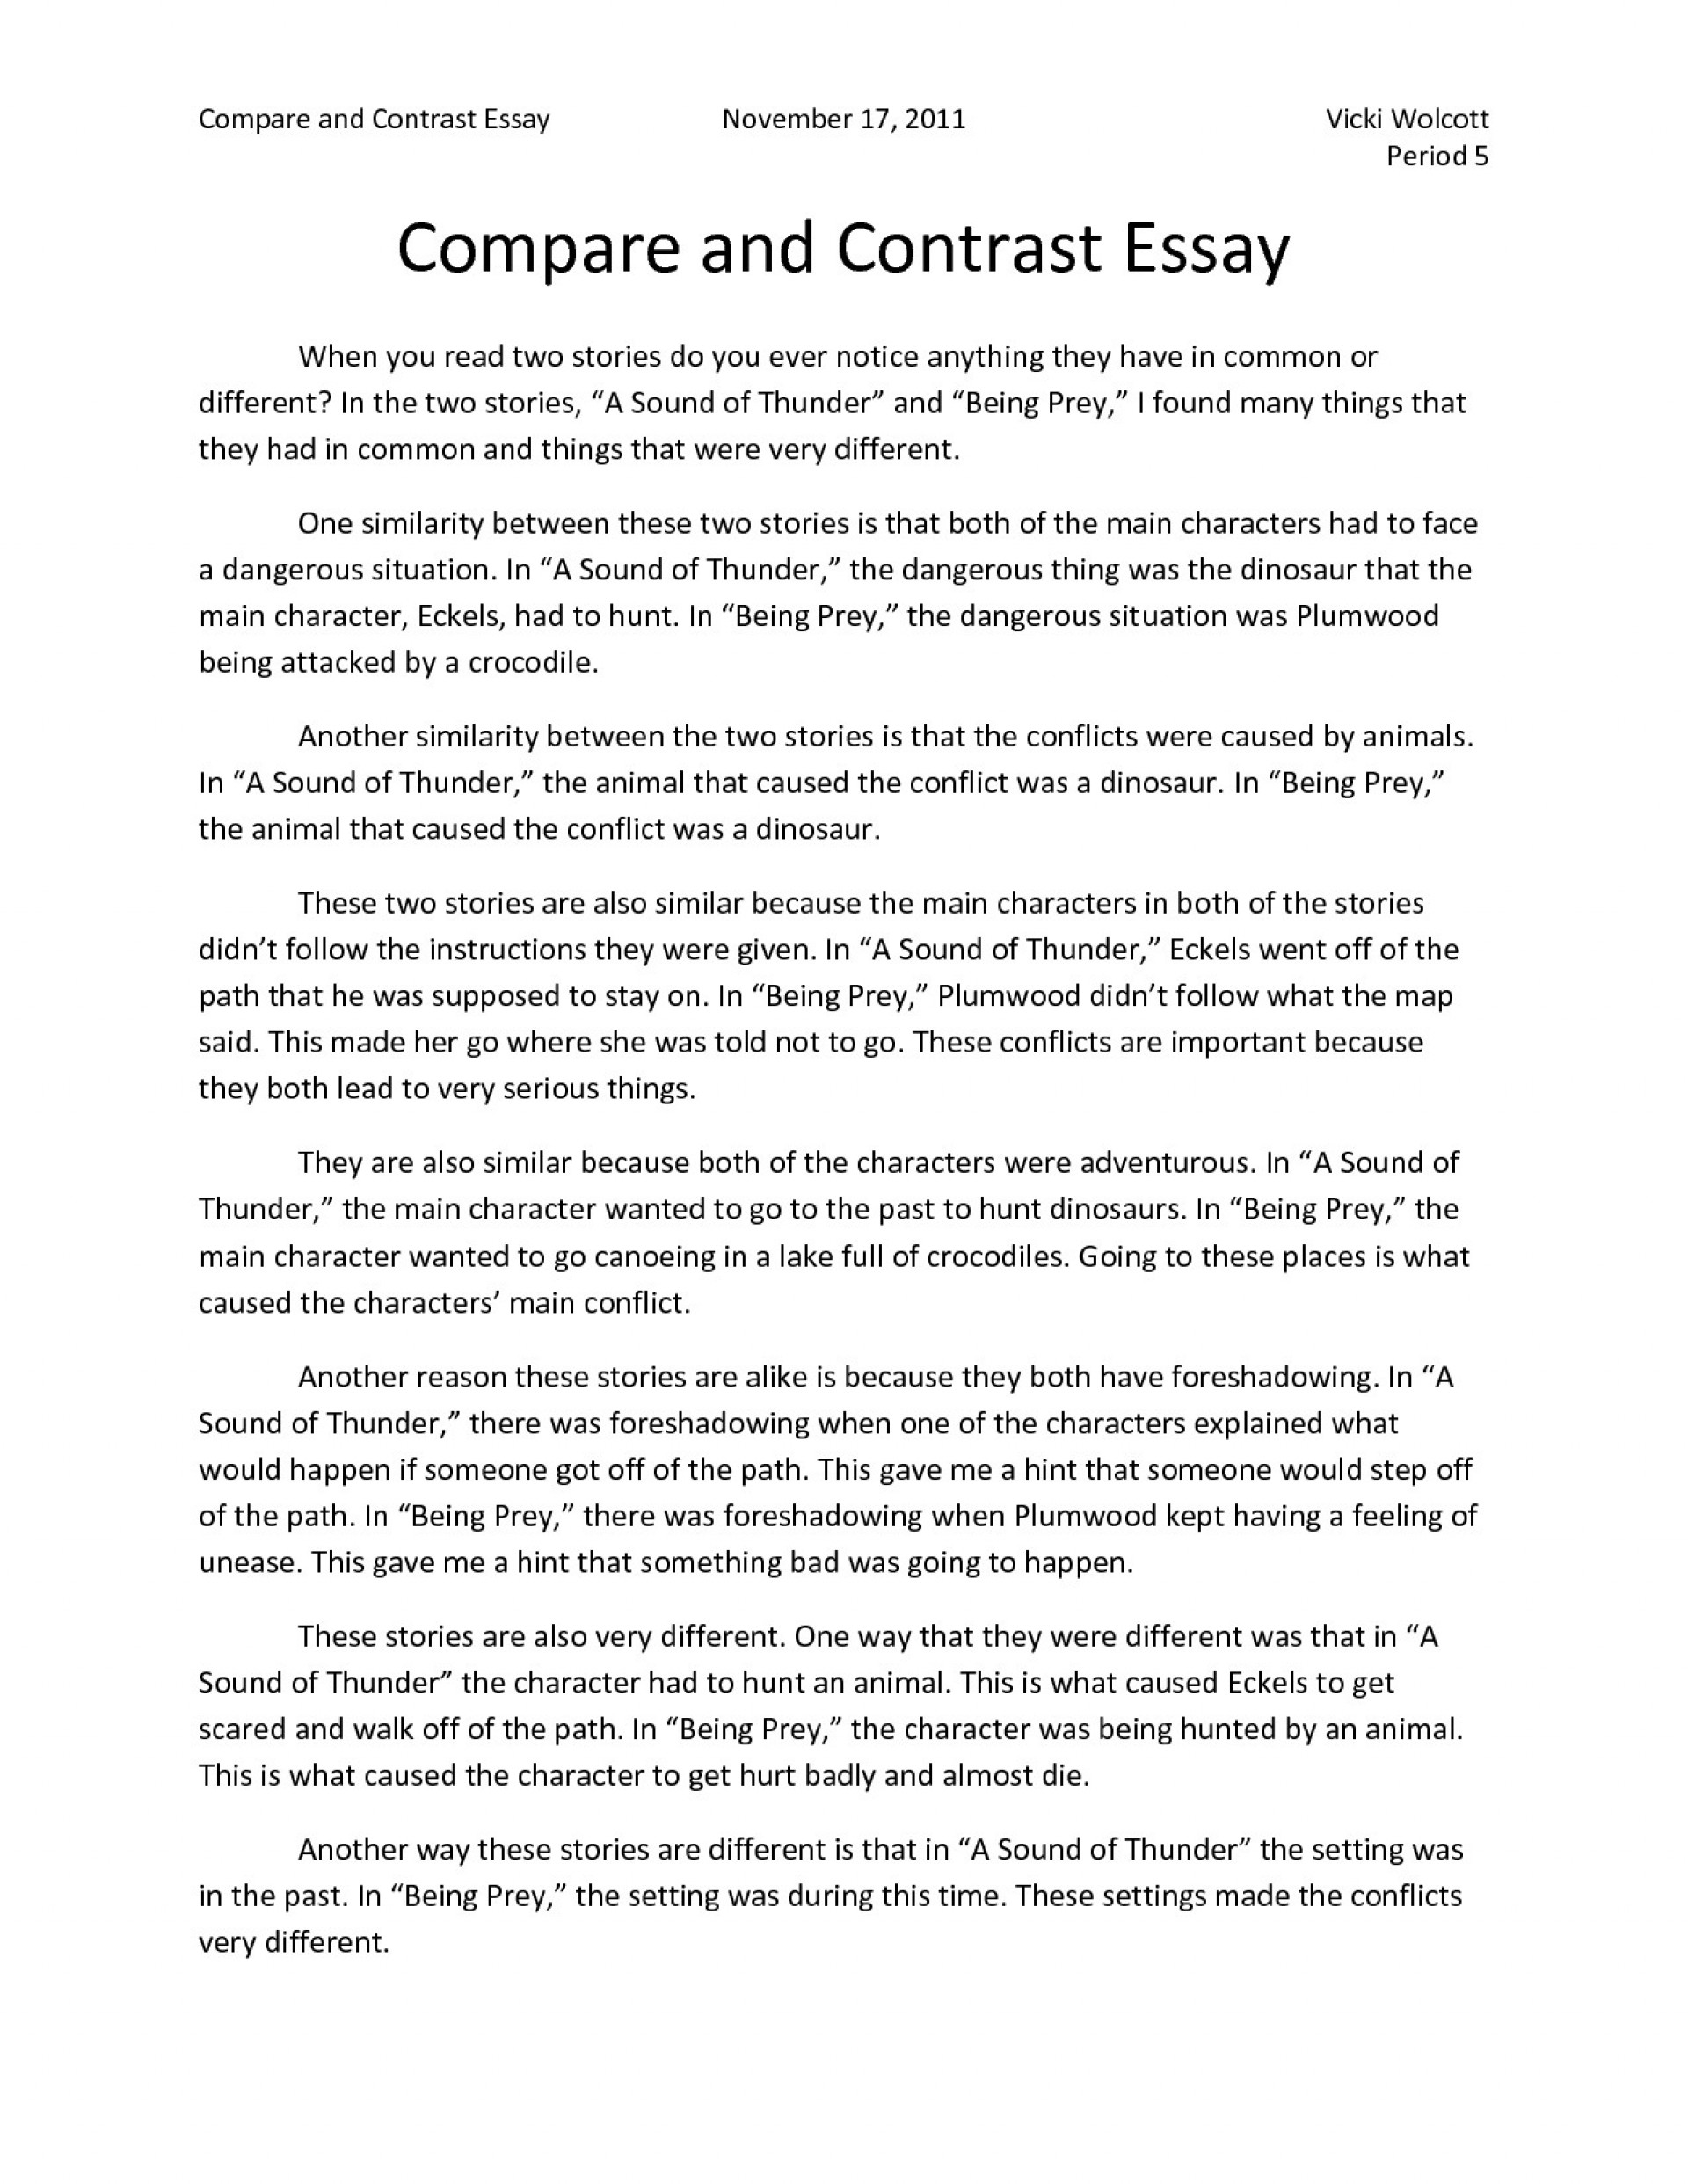 003 Essay Example An Of Compare And Contrast Comparison Ideas Maus Archaicawful Sample Pdf High School College For 5th Grade 1920